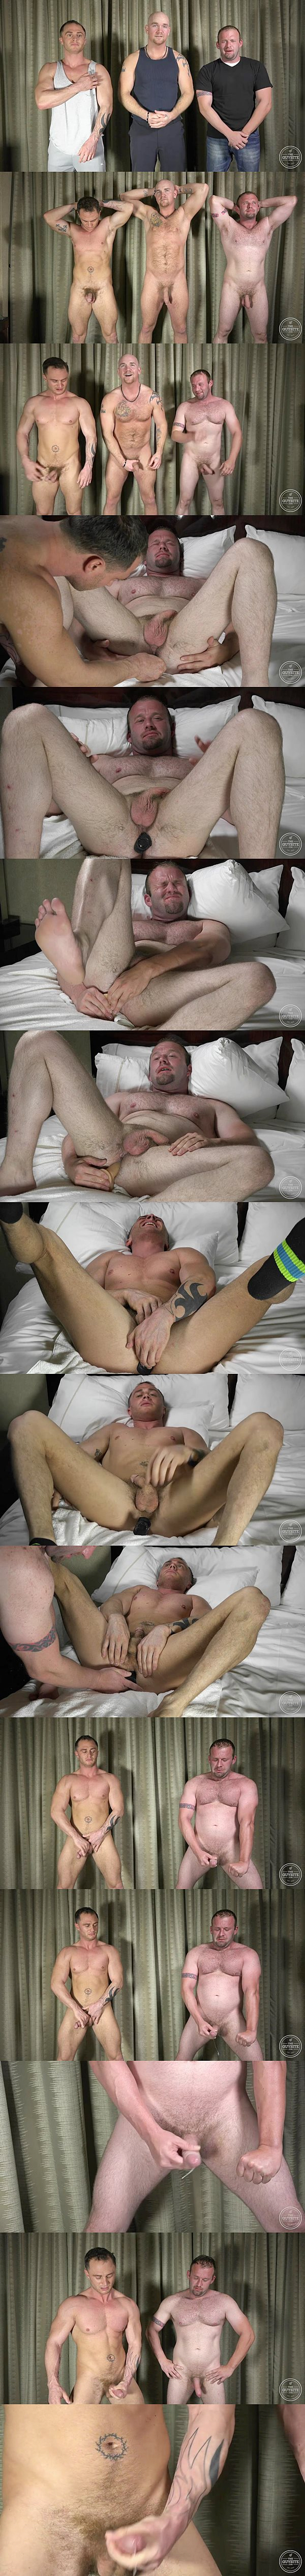 Hot straight guys Dom & Chance take butt plugs and dildo up their tight virgin asses before they shoot their hot cum at Theguysite 02